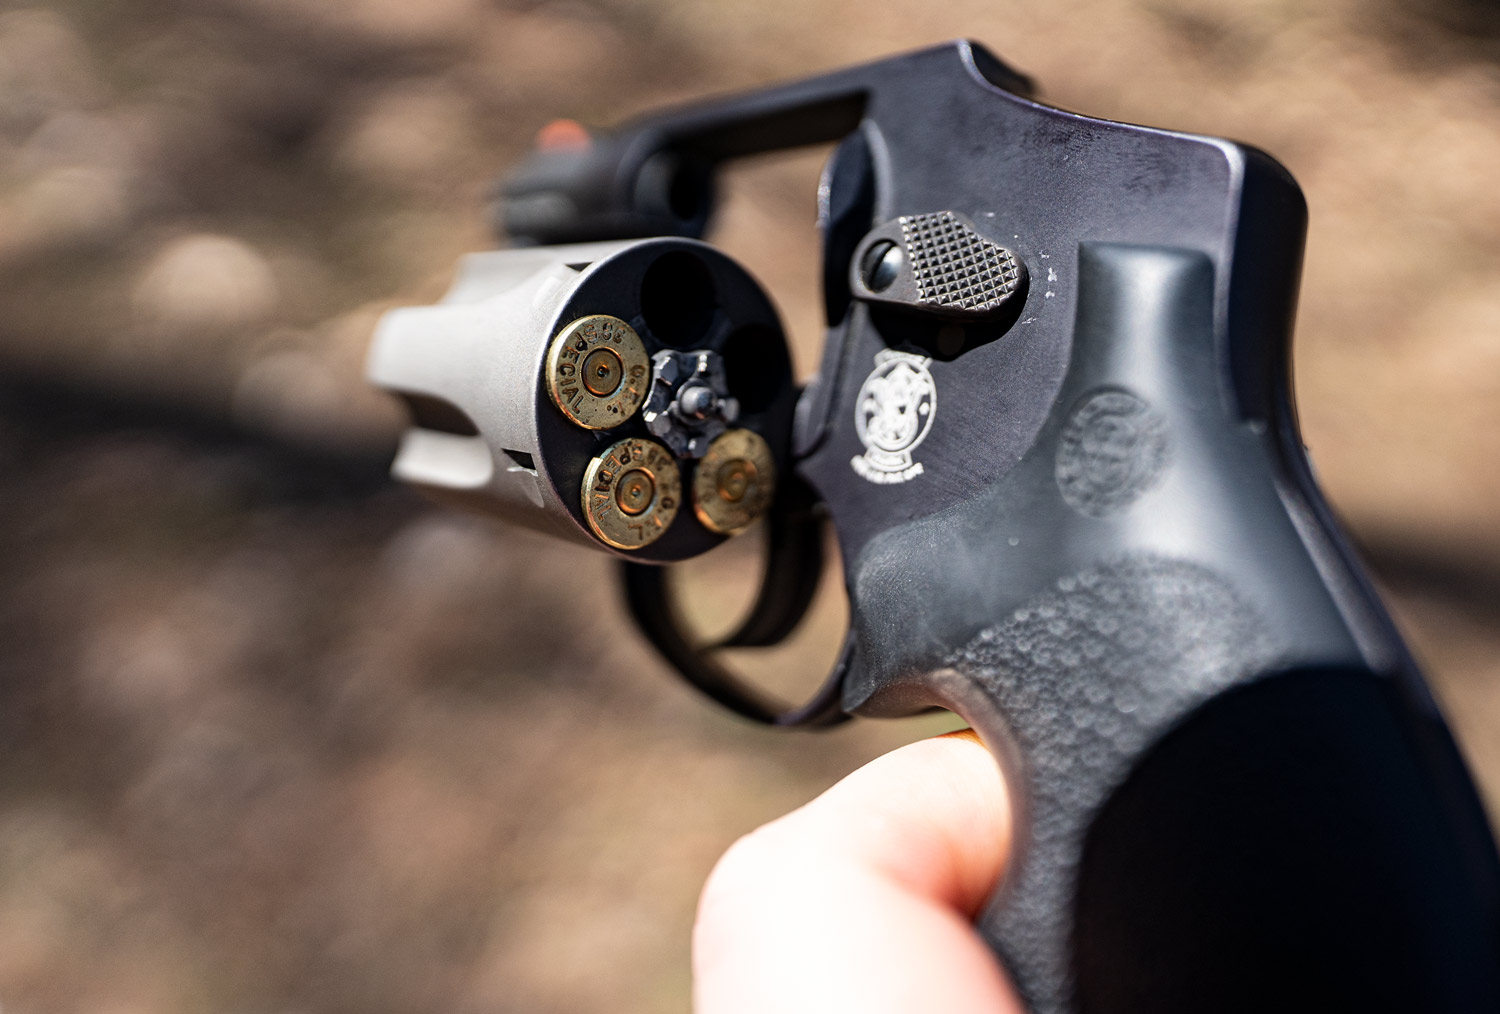 A Smith & Wesson snub nose revolver loaded with 38 special ammunition